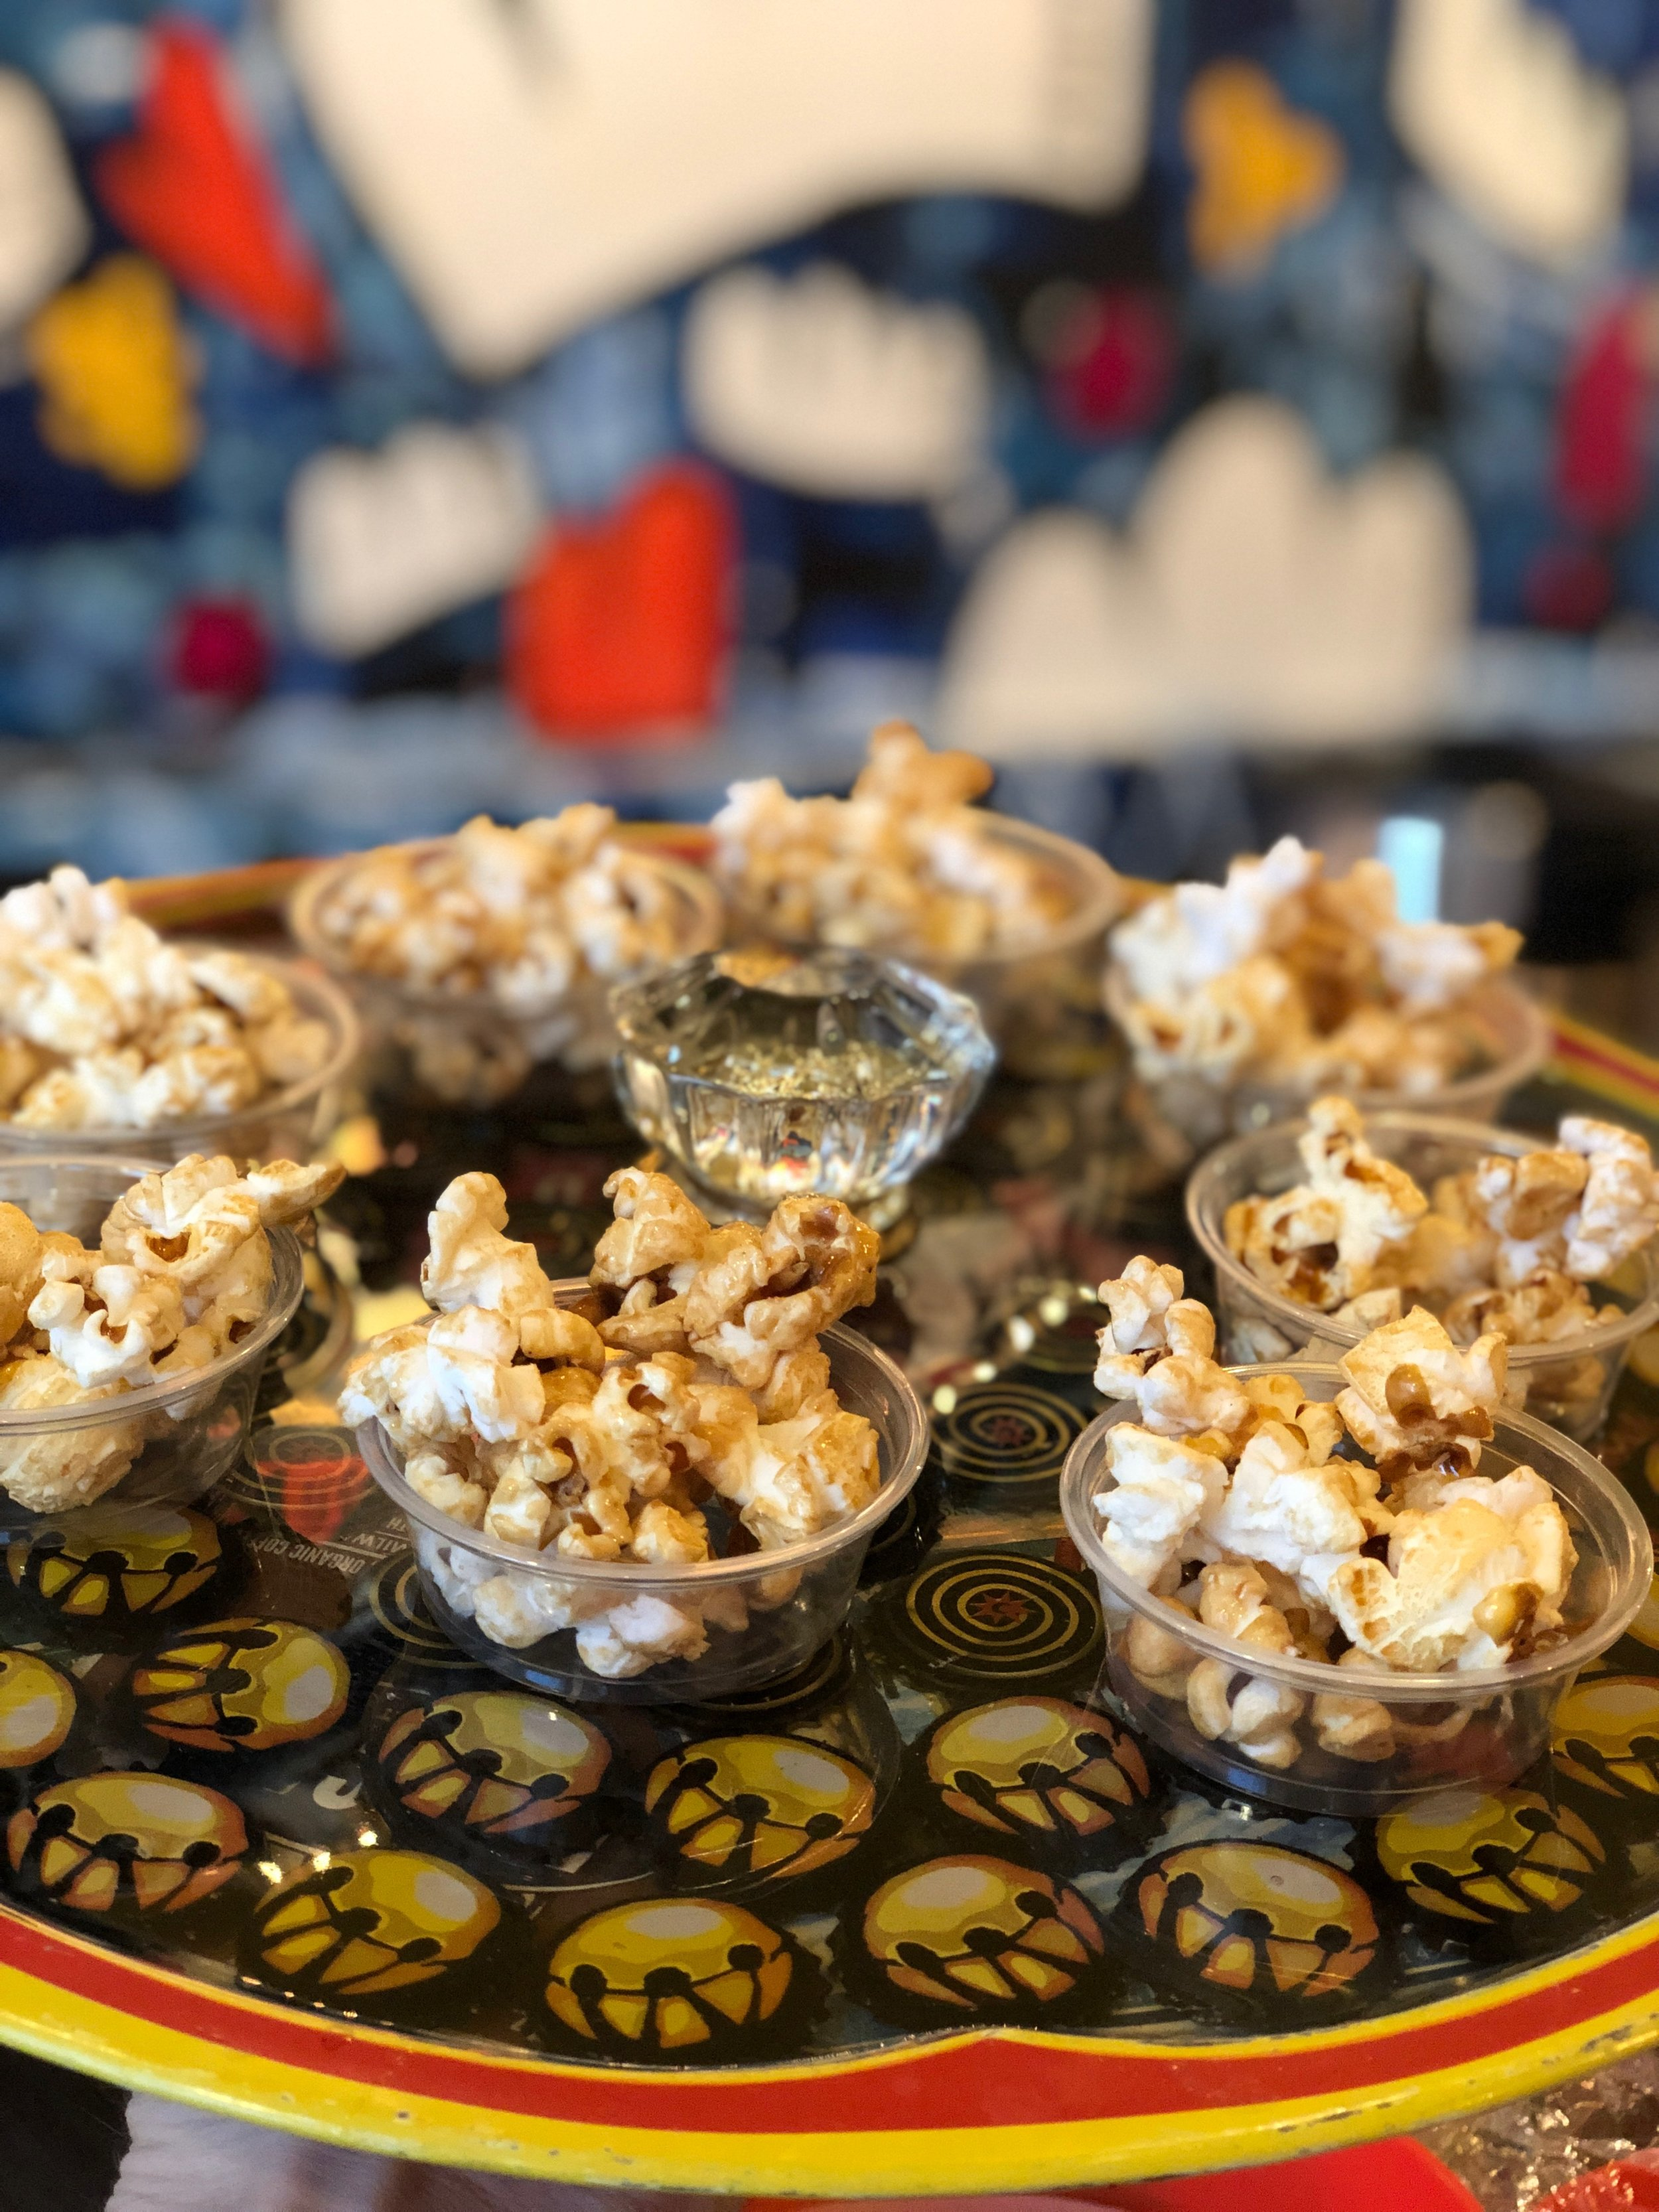 And of course,  Popcorn - Flavors rotate weekly starting at $2.50.